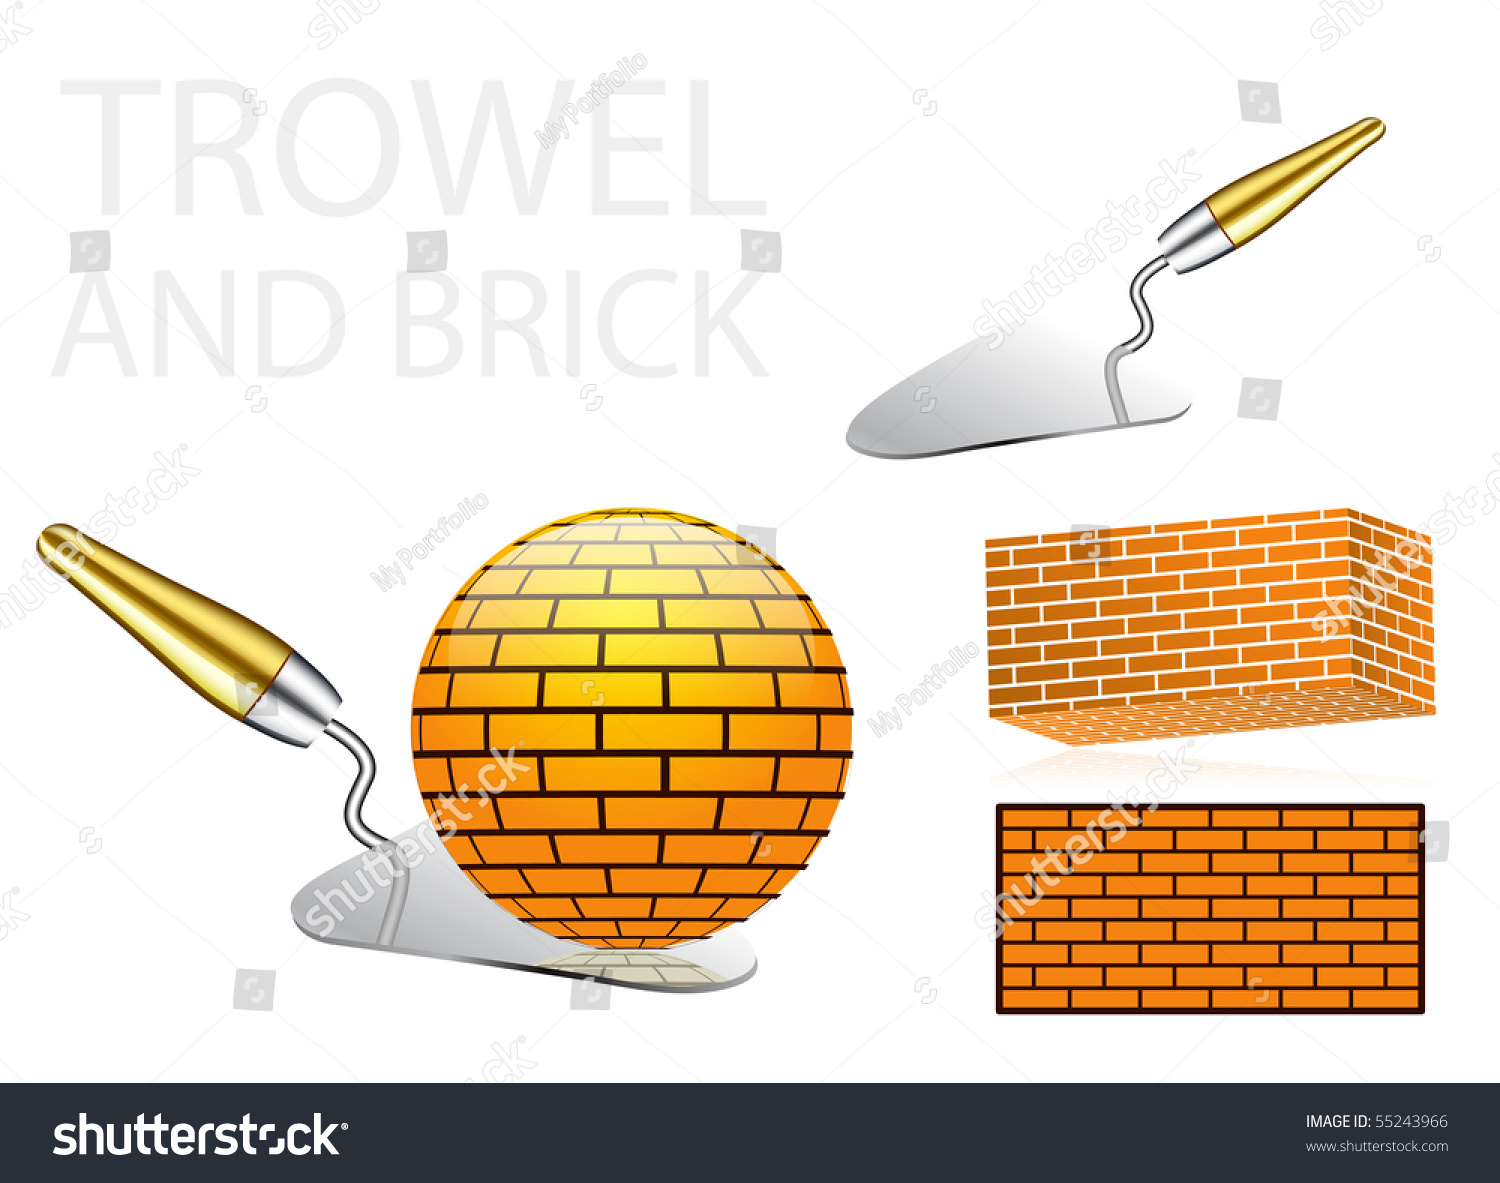 Illustrations Of A Trowel : Trowel and bricks illustrations with globe brick concept